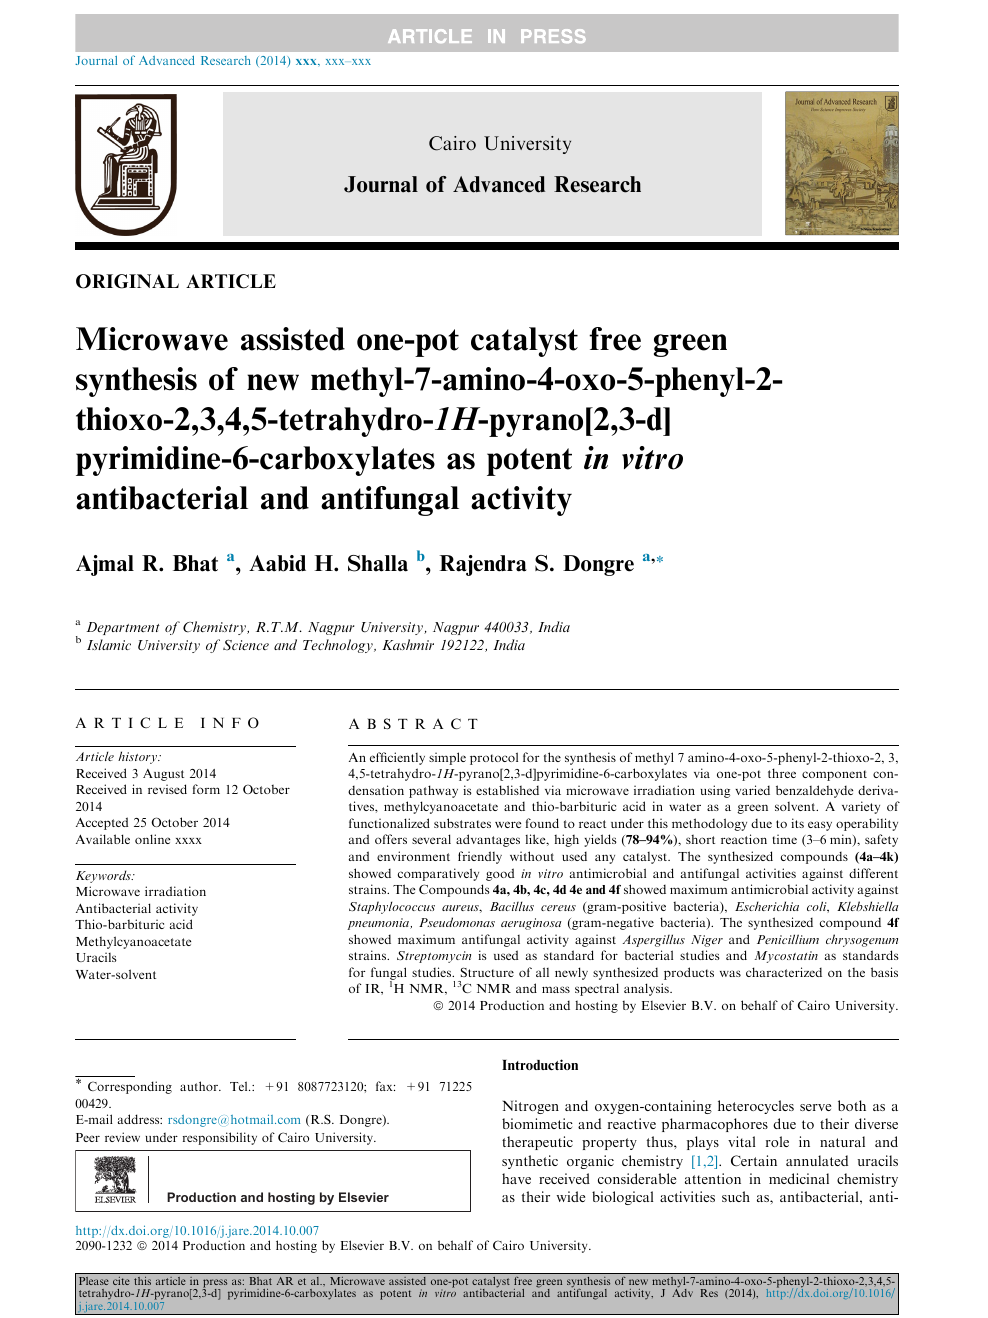 Microwave assisted one-pot catalyst free green synthesis of